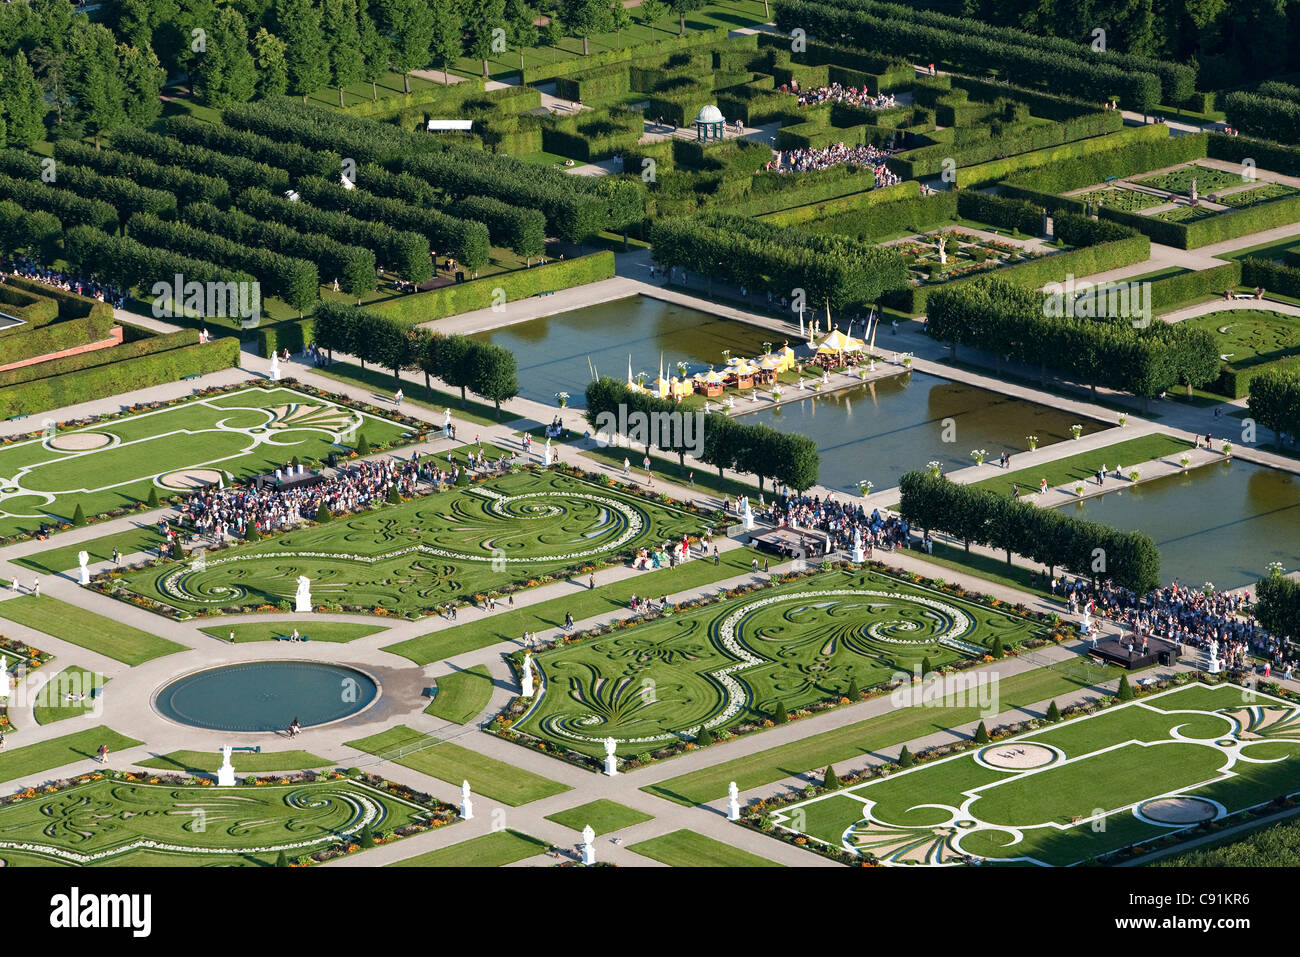 Aerial view of a small fete in the garden of Herrenhausen Gardens, Hannover, Lower Saxony, Germany - Stock Image